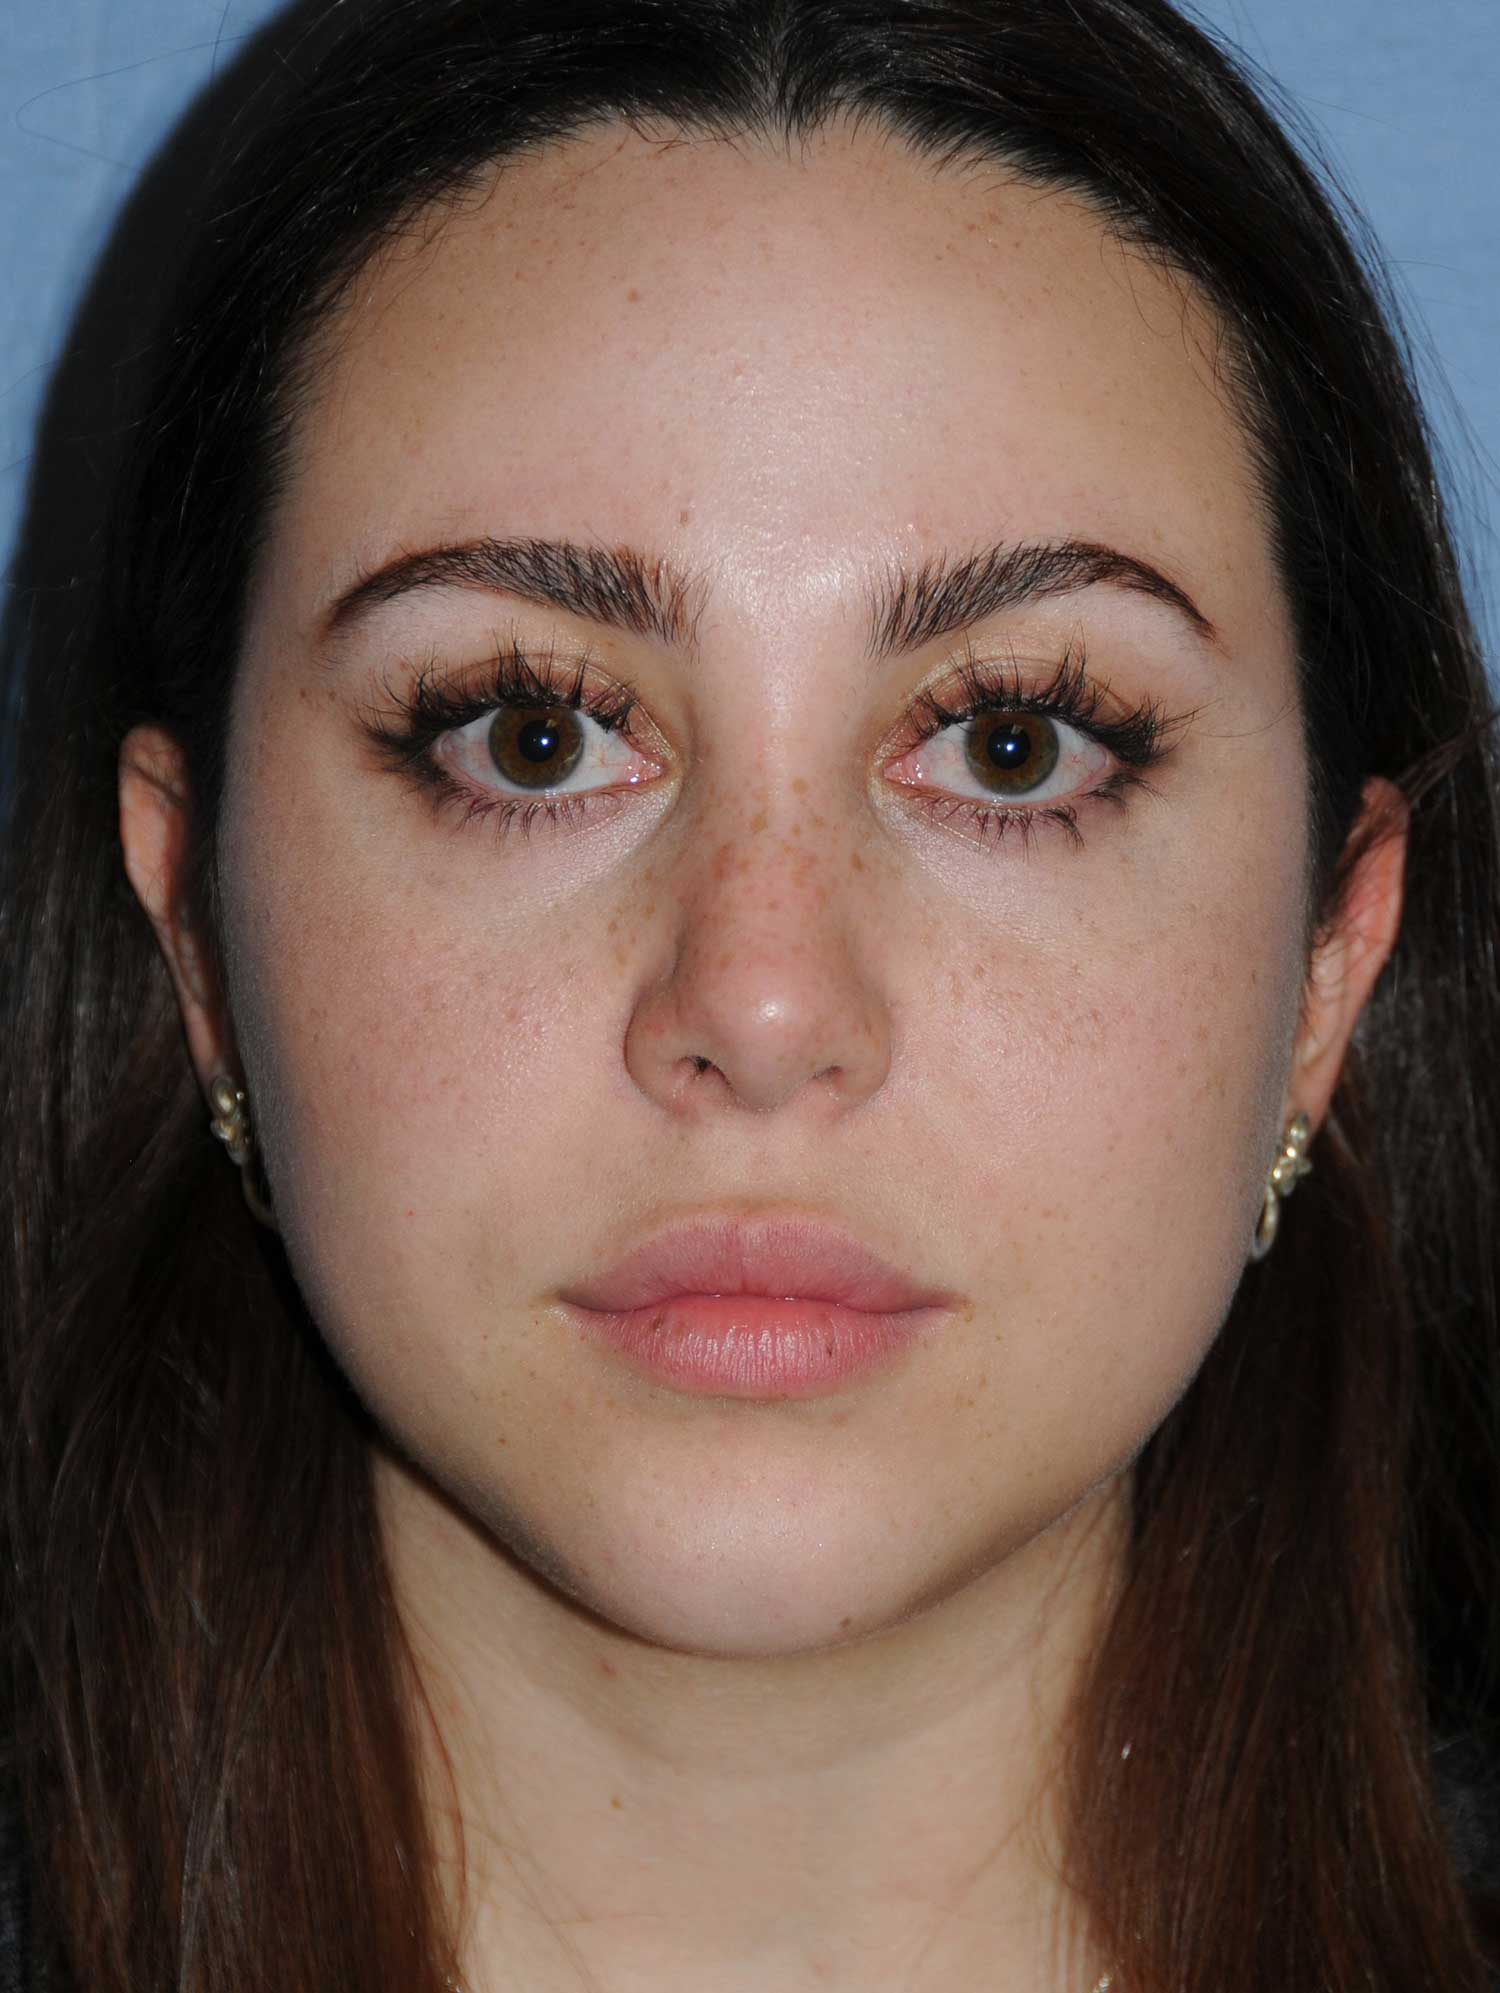 Rhinoplasty for a Bulbous Nasal Tip, Prominent Nasal Bridge, Short Nose / Columella and Lip Fat Transfer for Small Thin Lateral Upper Outer Lips After Front View